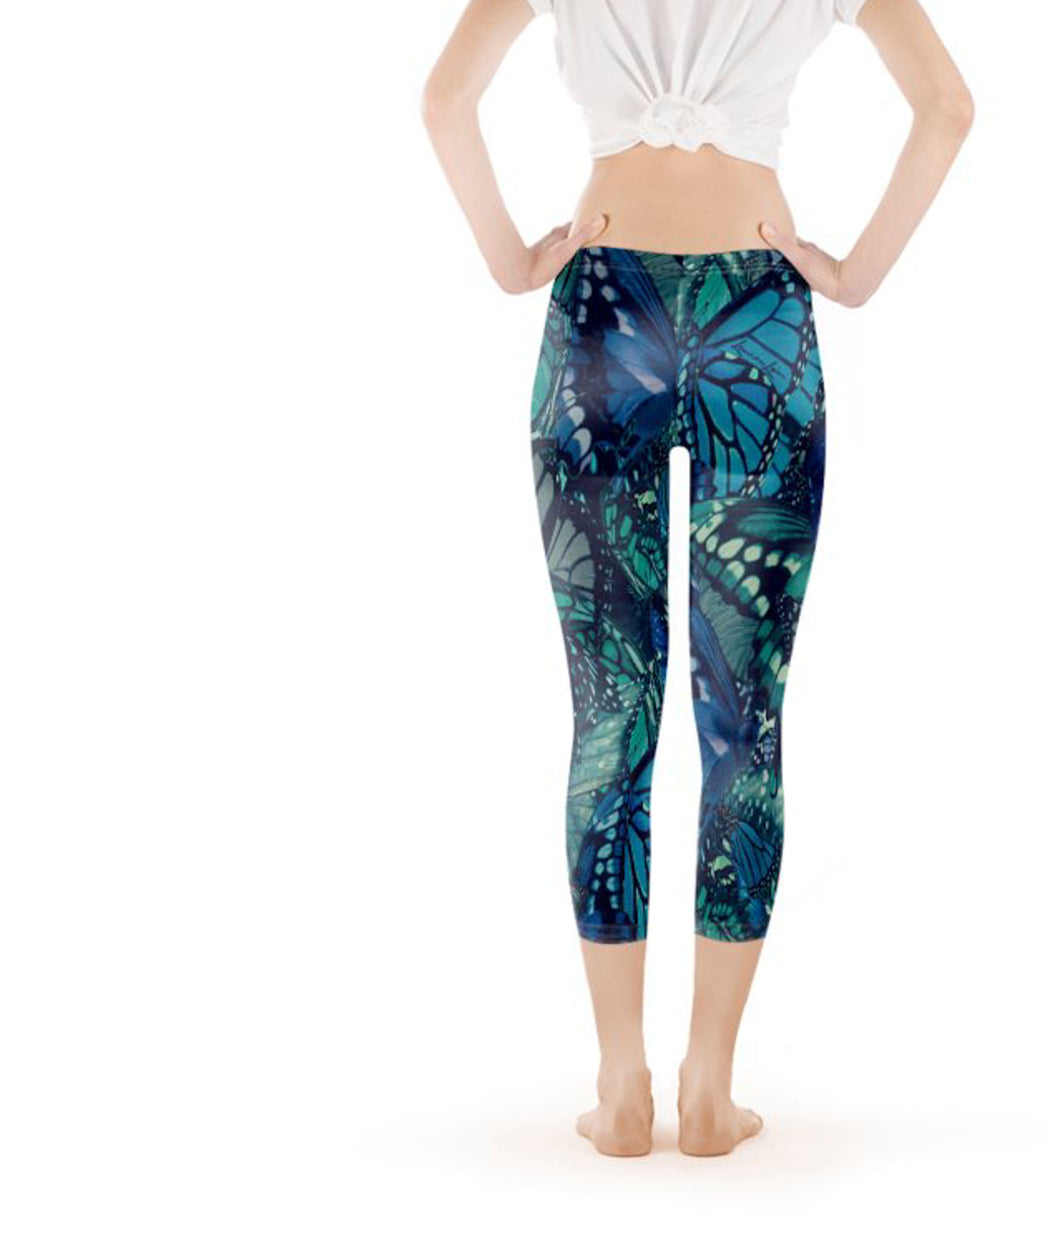 Capri Legging Low-Rise - Ocean's Blue Butterfly Print